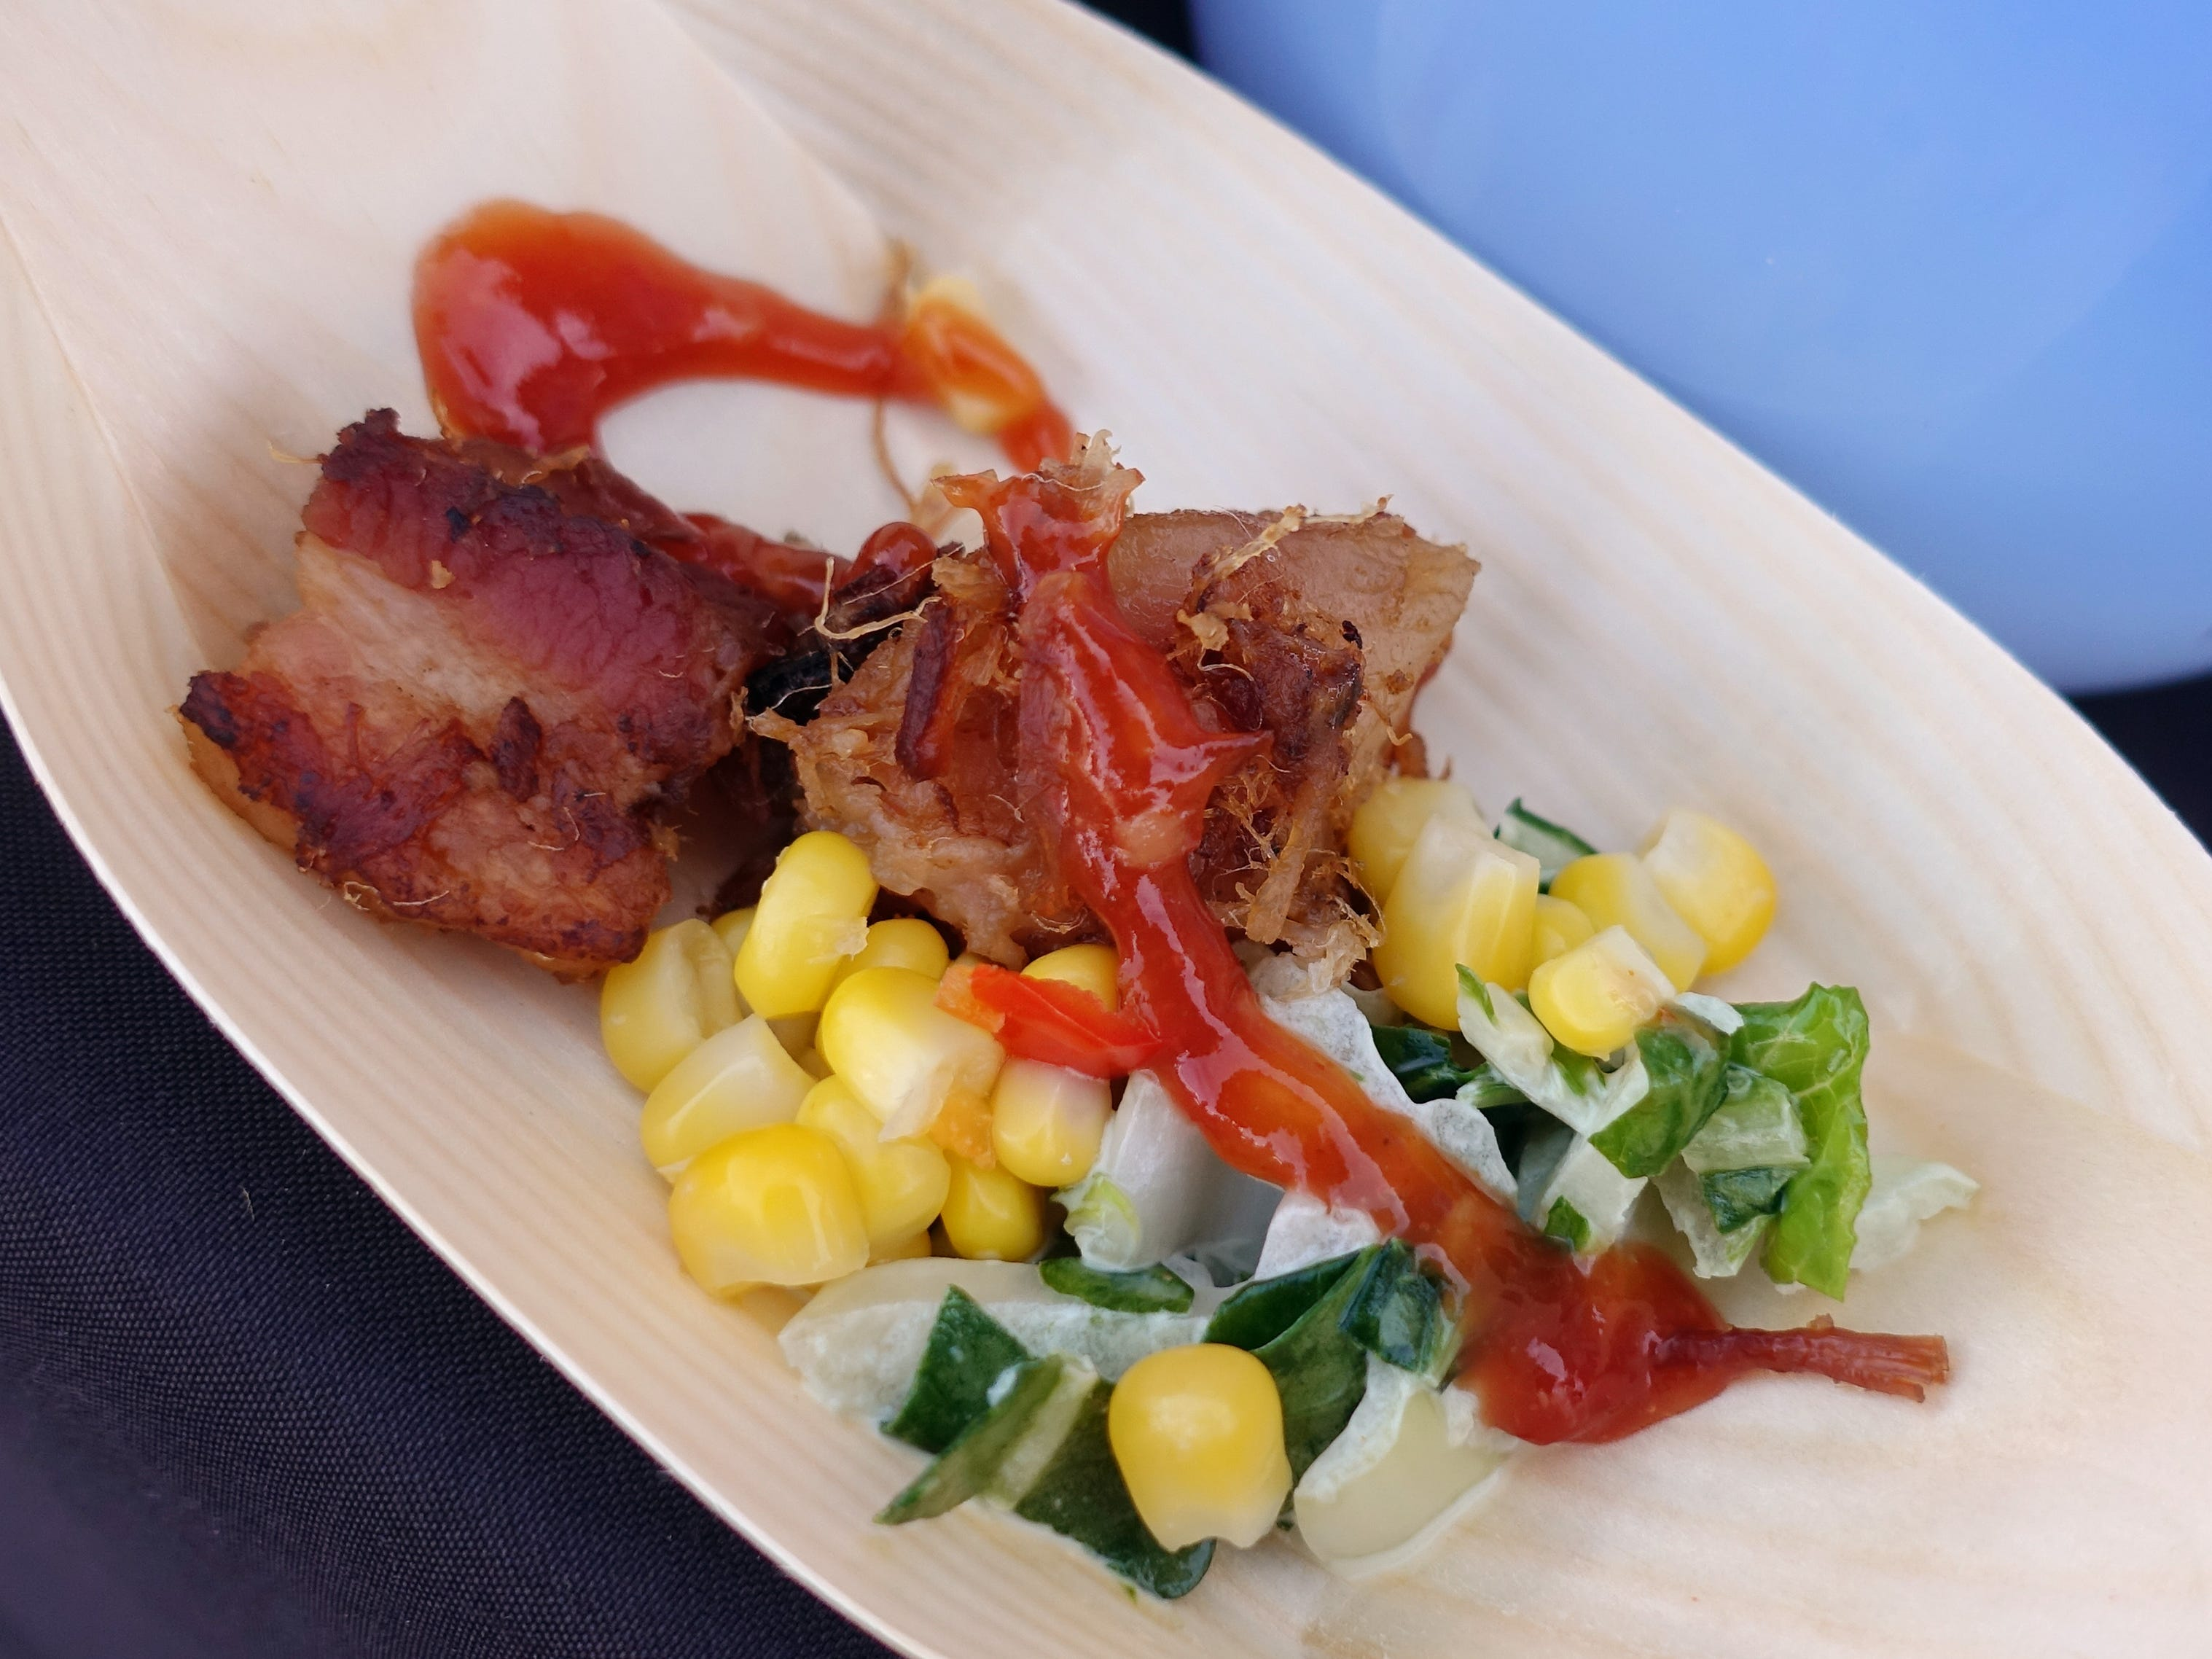 Berkshire pork belly with Thai chile barbecue sauce, preserved corn and bok choy honey slaw from Litchfield's at the 2019 Devour Culinary Classic at the Desert Botanical Garden in Phoenix.